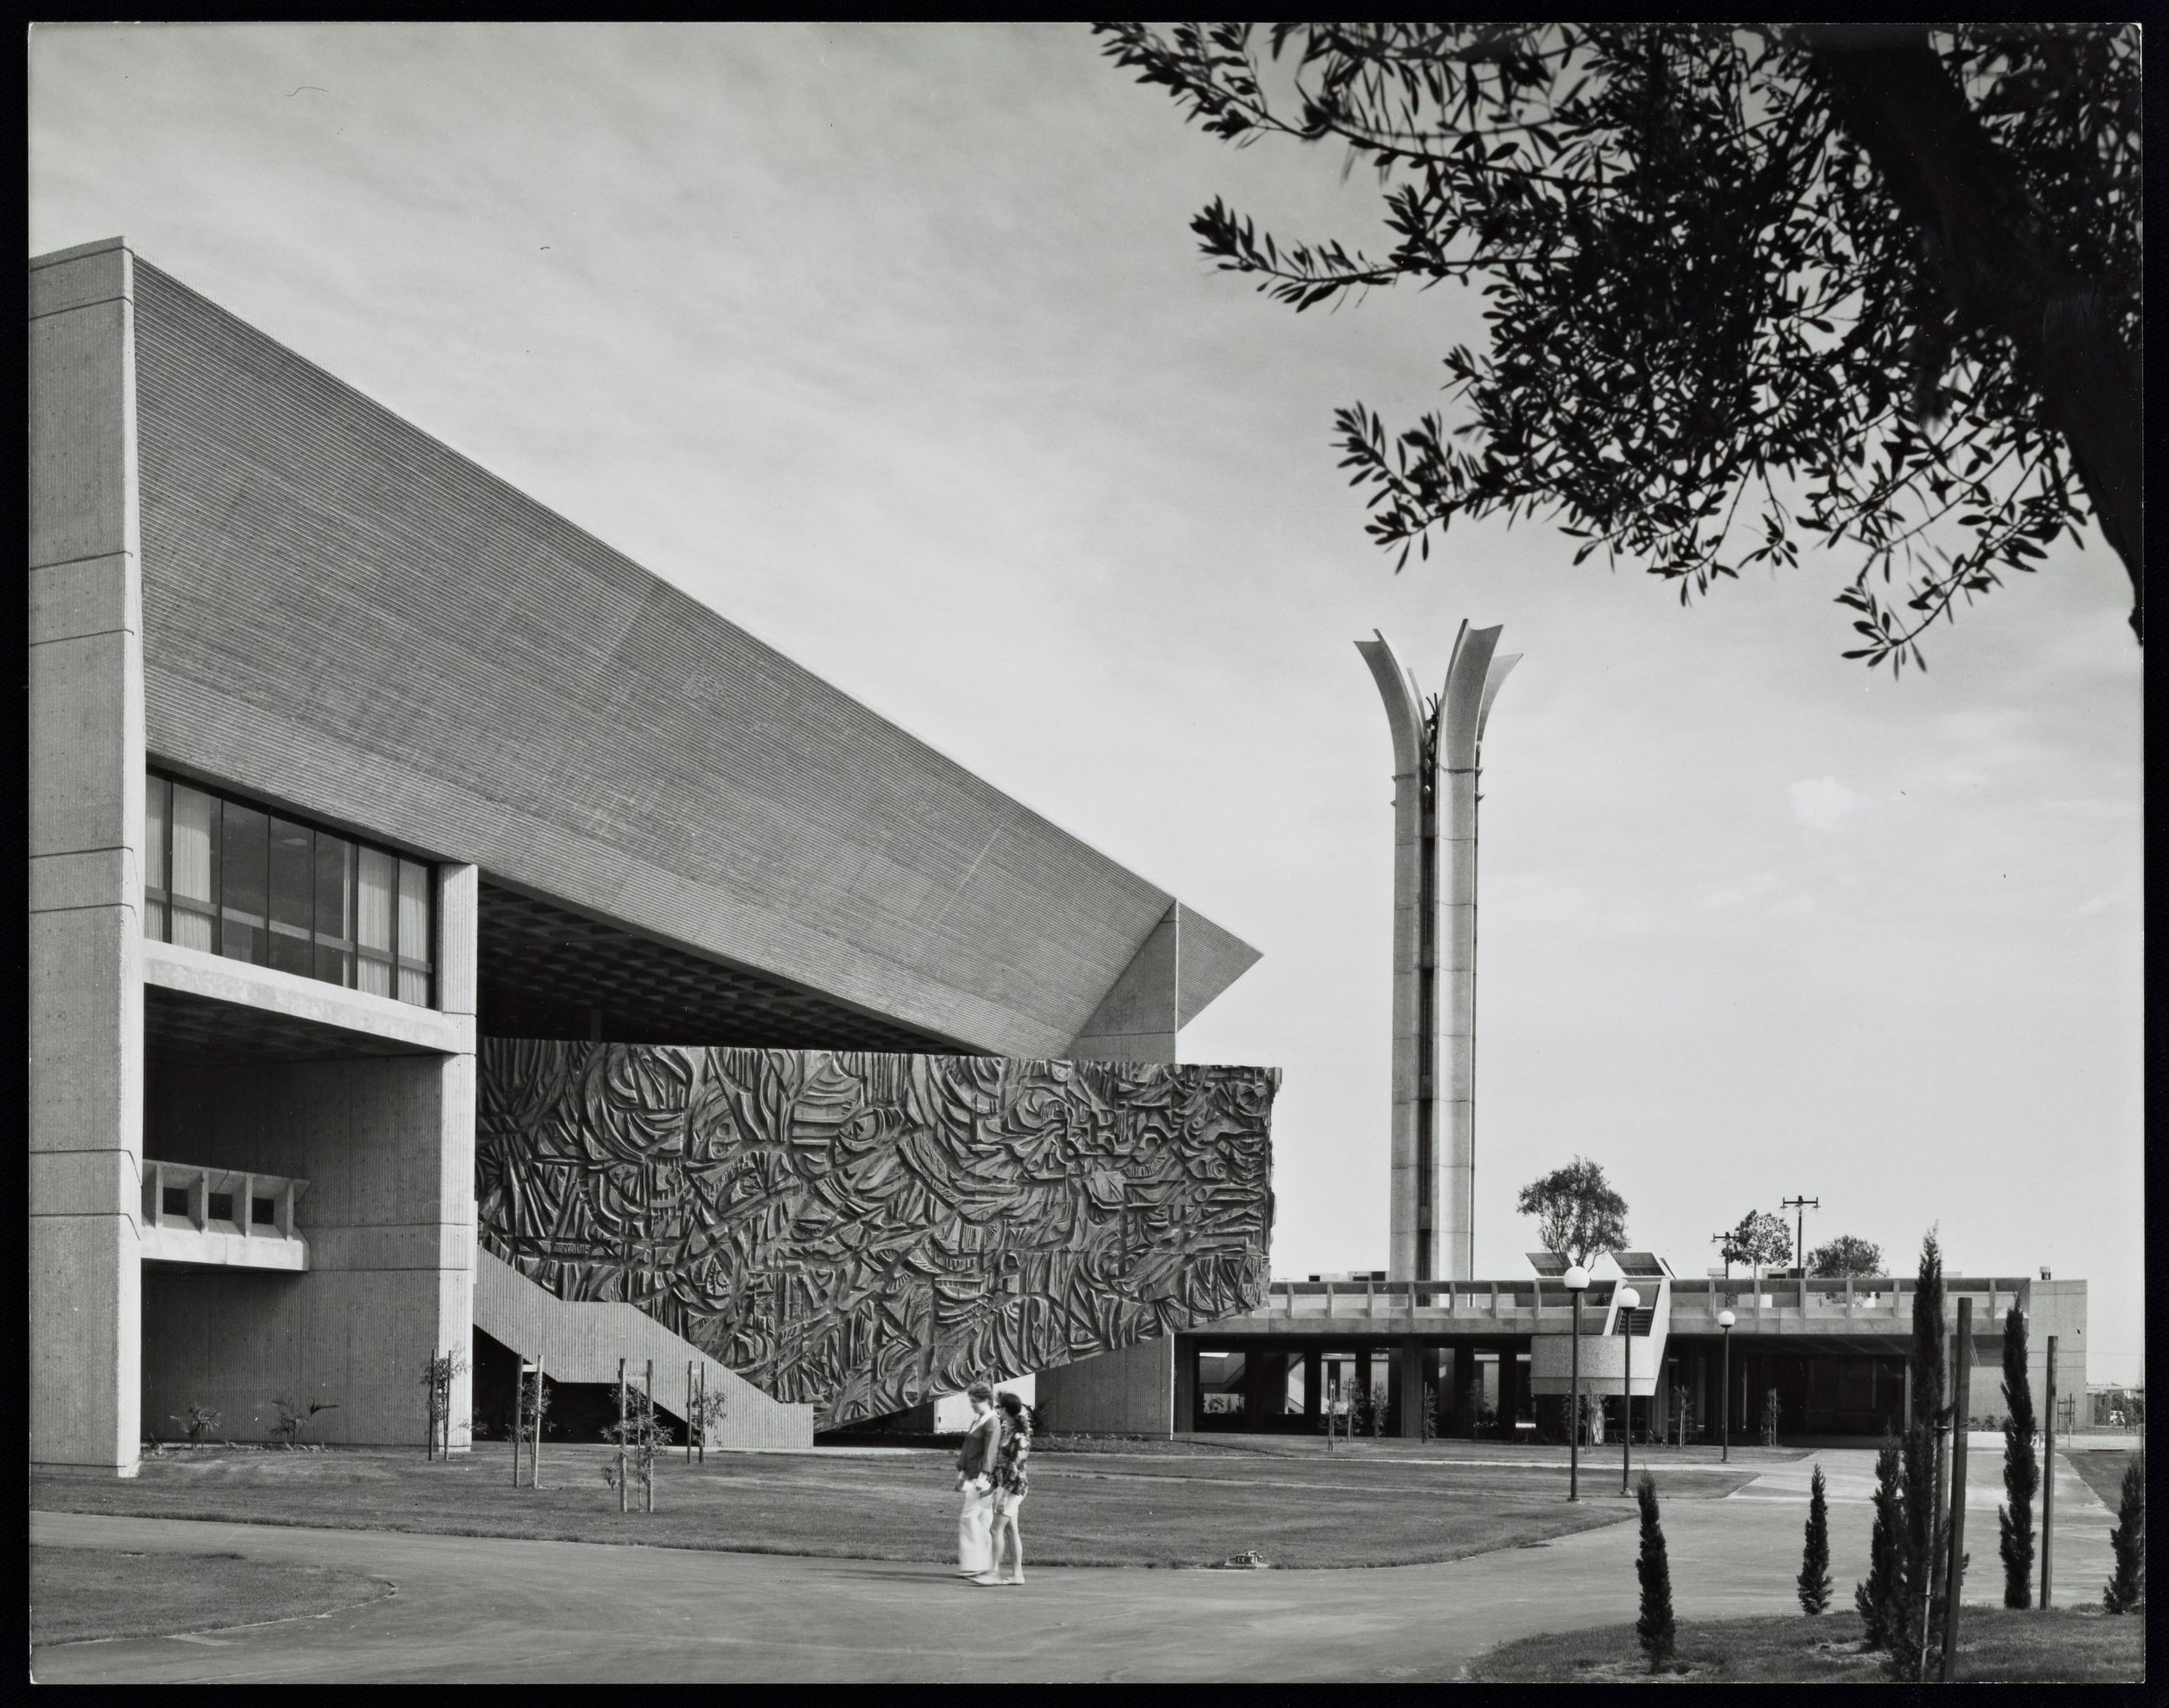 The Cypress College  Library Mural , an expressive counterpoint to its paler, grid-based surroundings. Photographed by Julius Shulman in 1970. © J. Paul Getty Trust. Getty Research Institute, Los Angeles (2004.R.10)